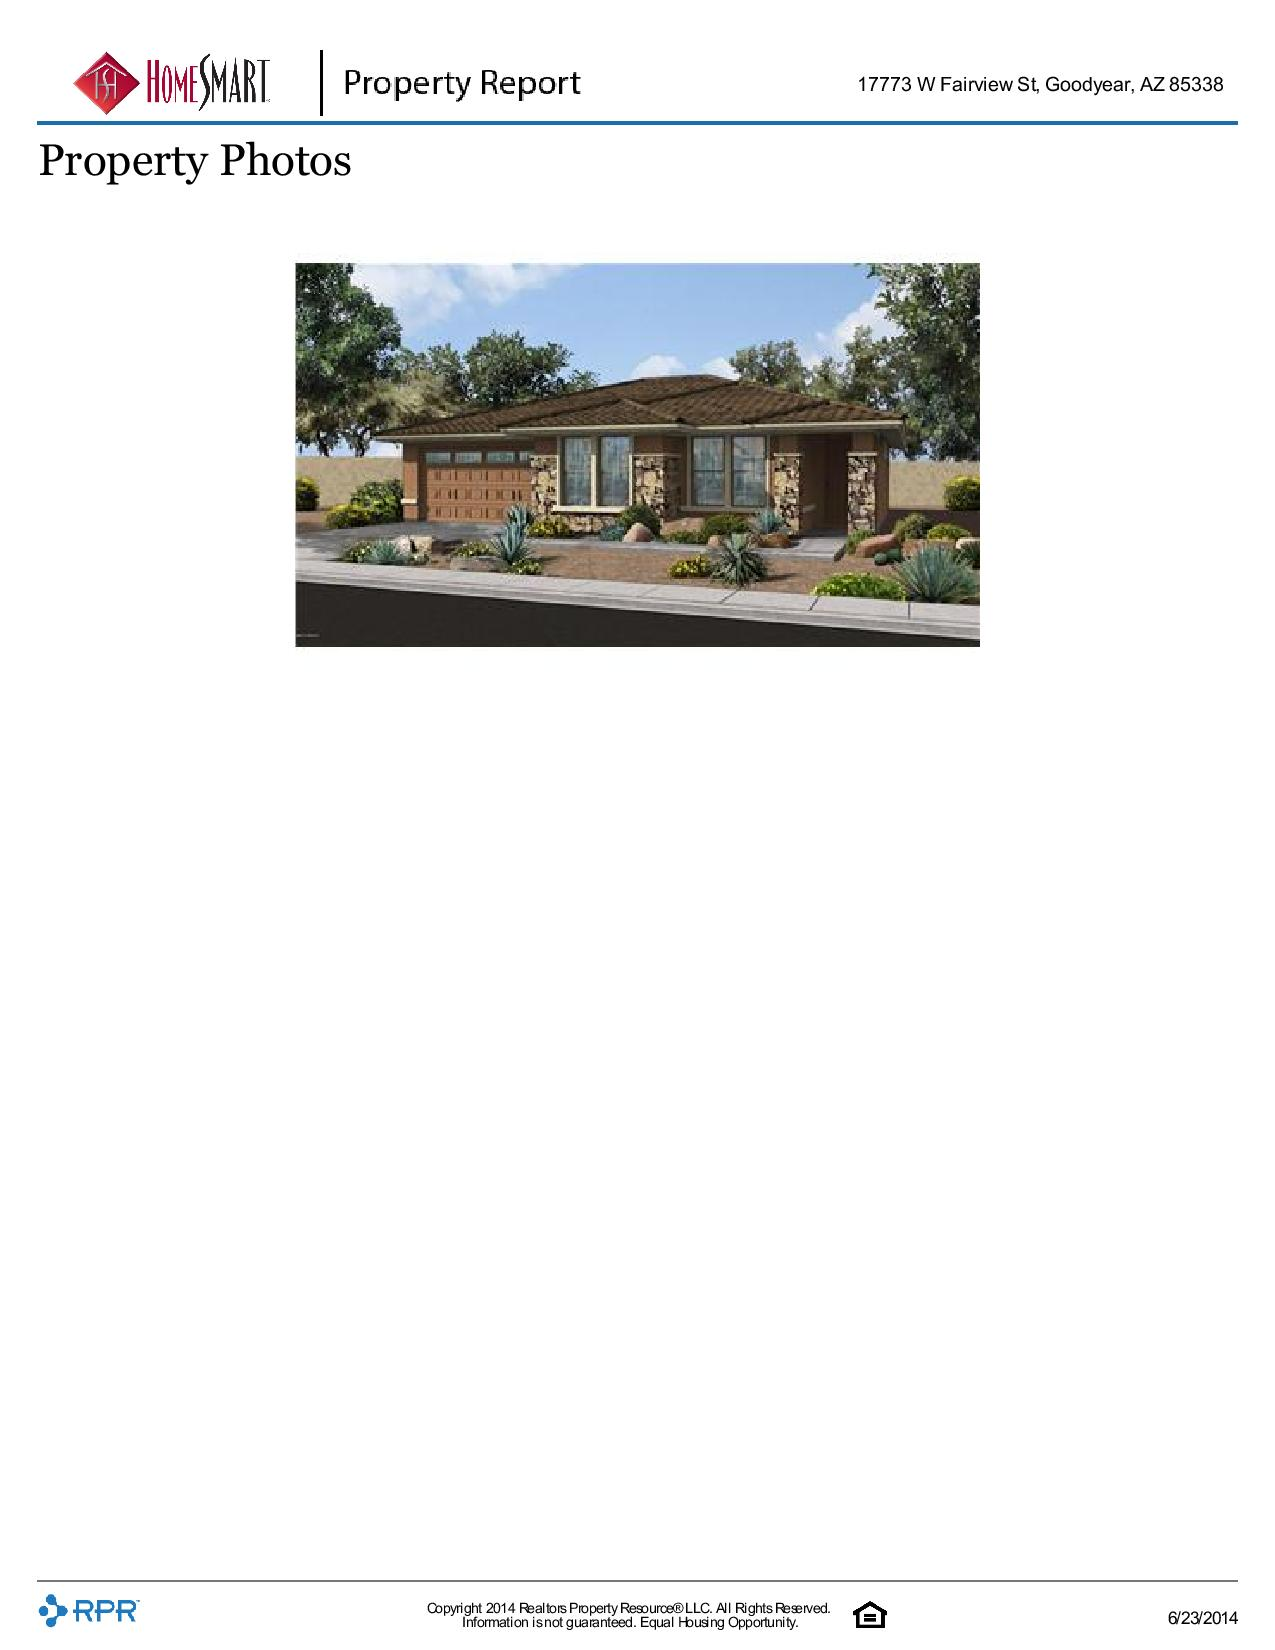 17773-W-Fairview-St-Goodyear-AZ-85338-page-005